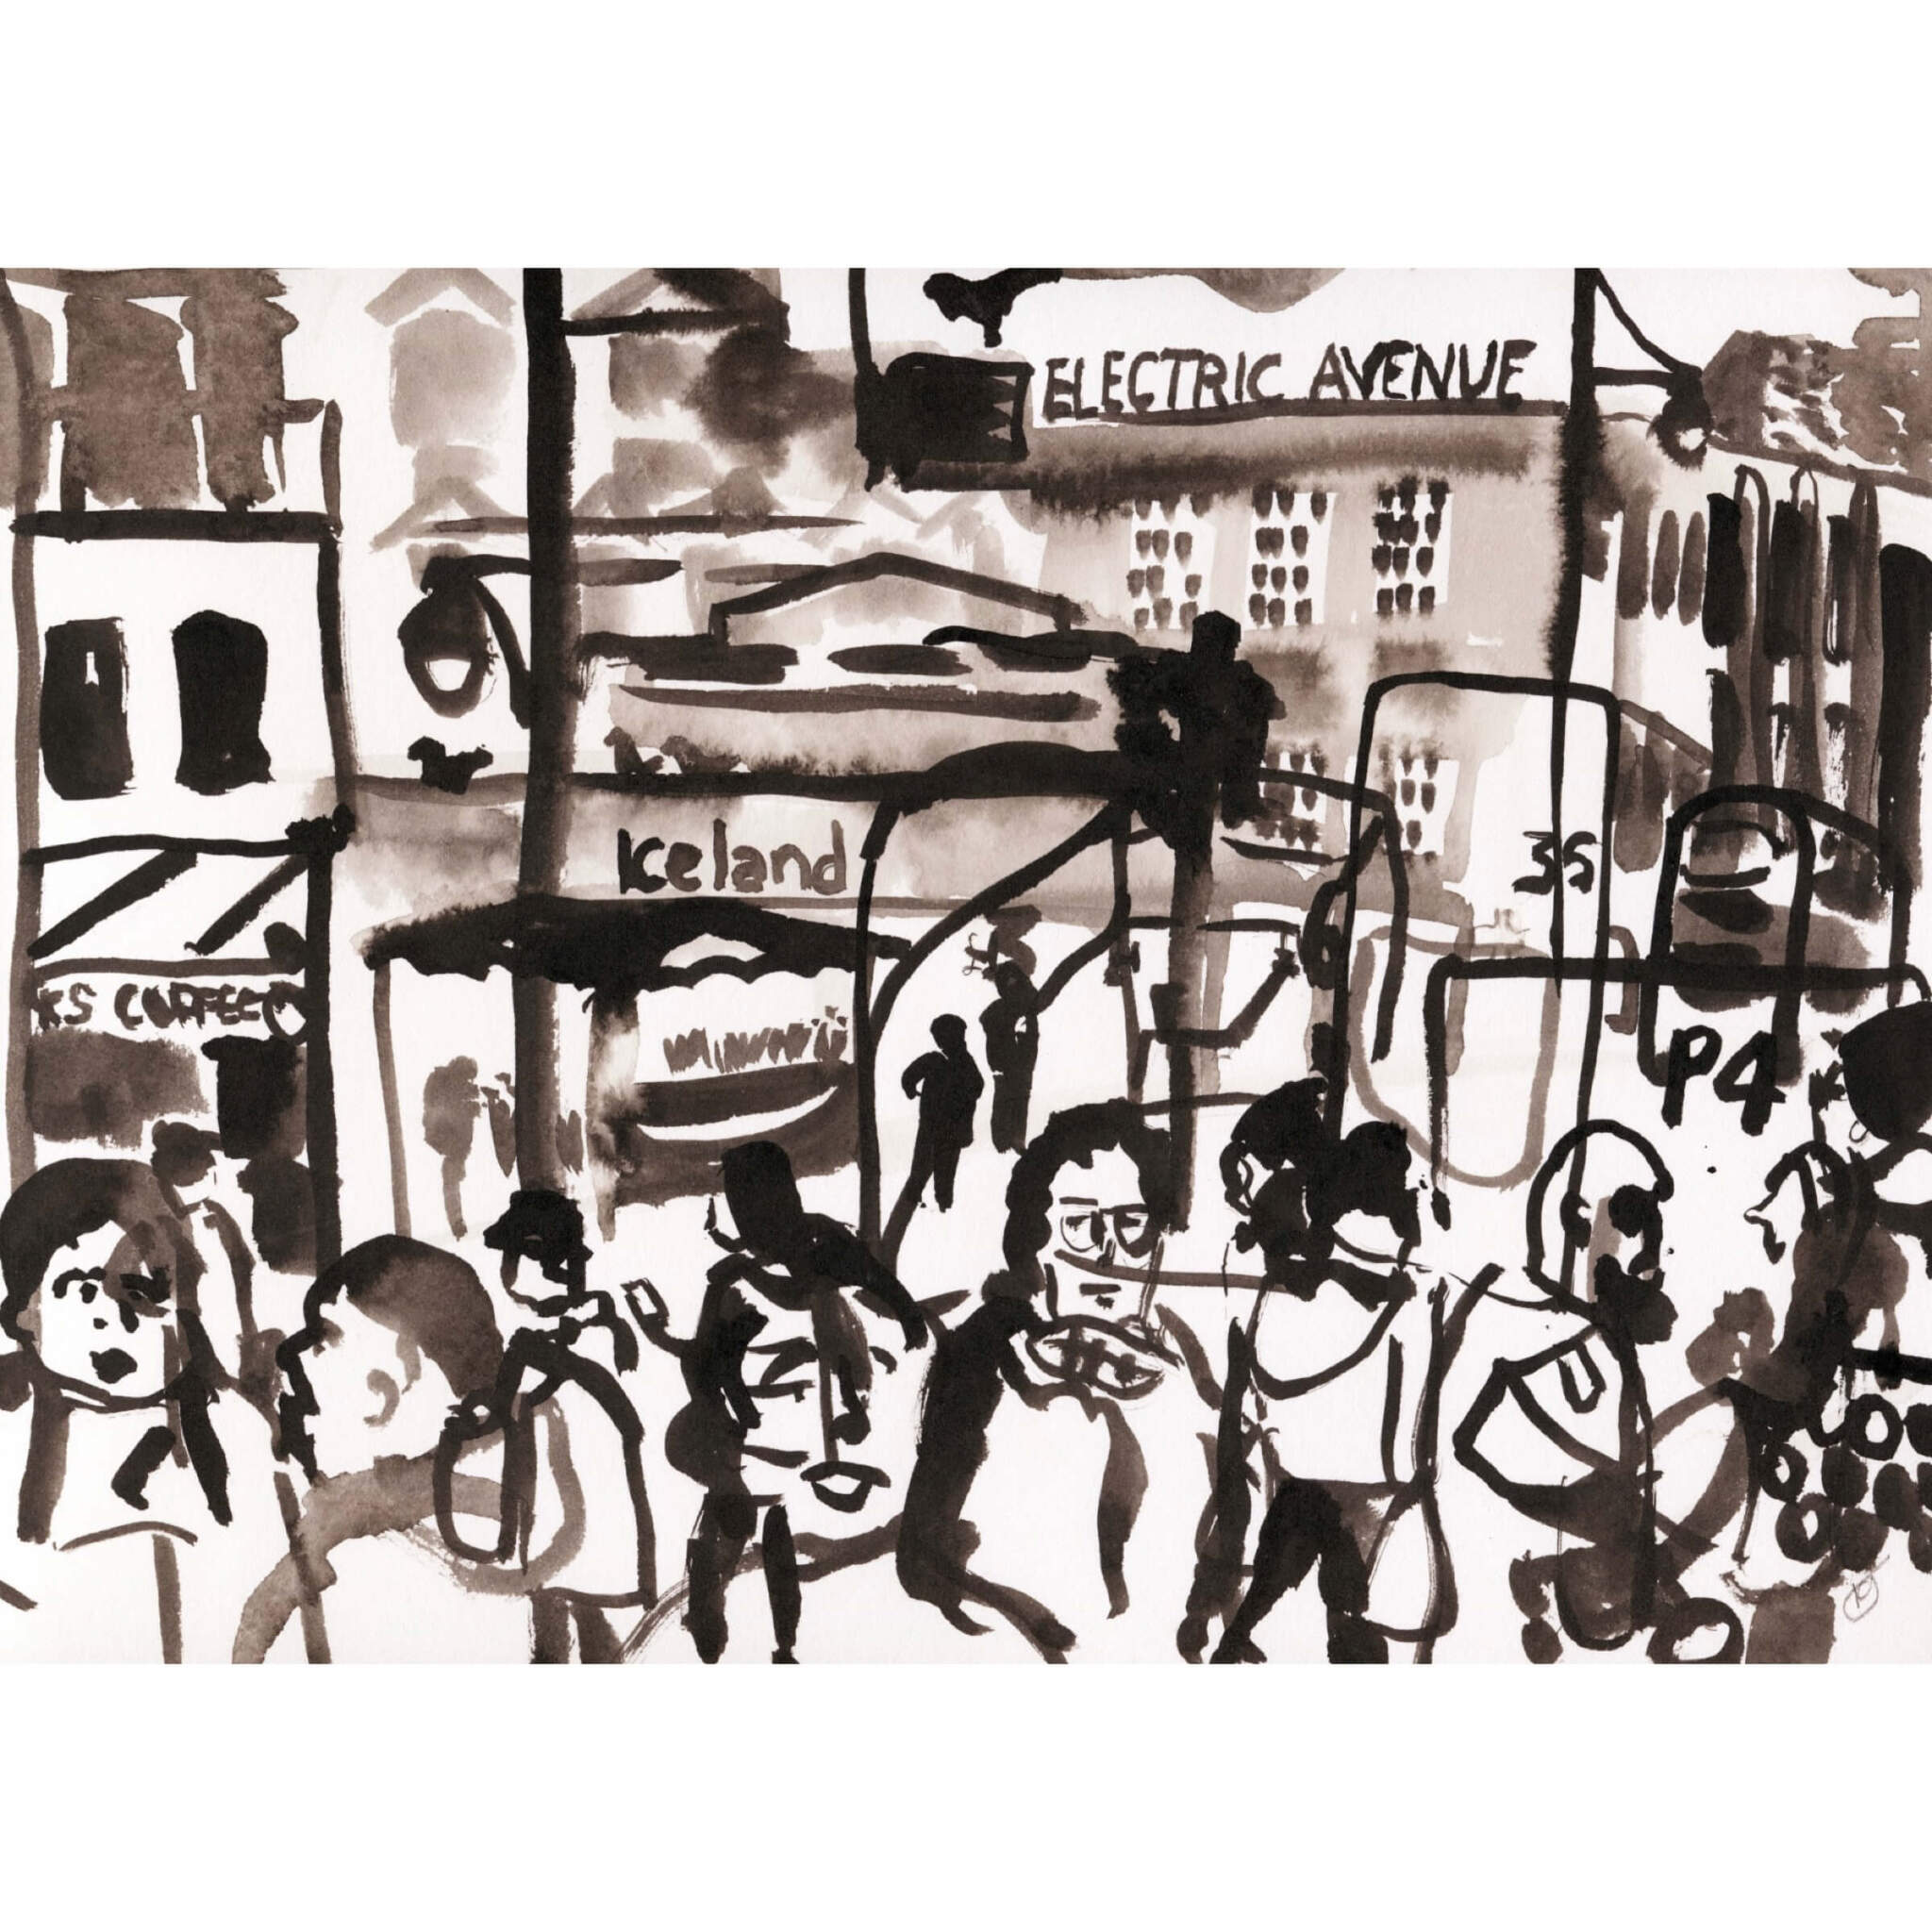 IMG 8753 - Brixton Iceland Electric Avenue by Kirsty Jones